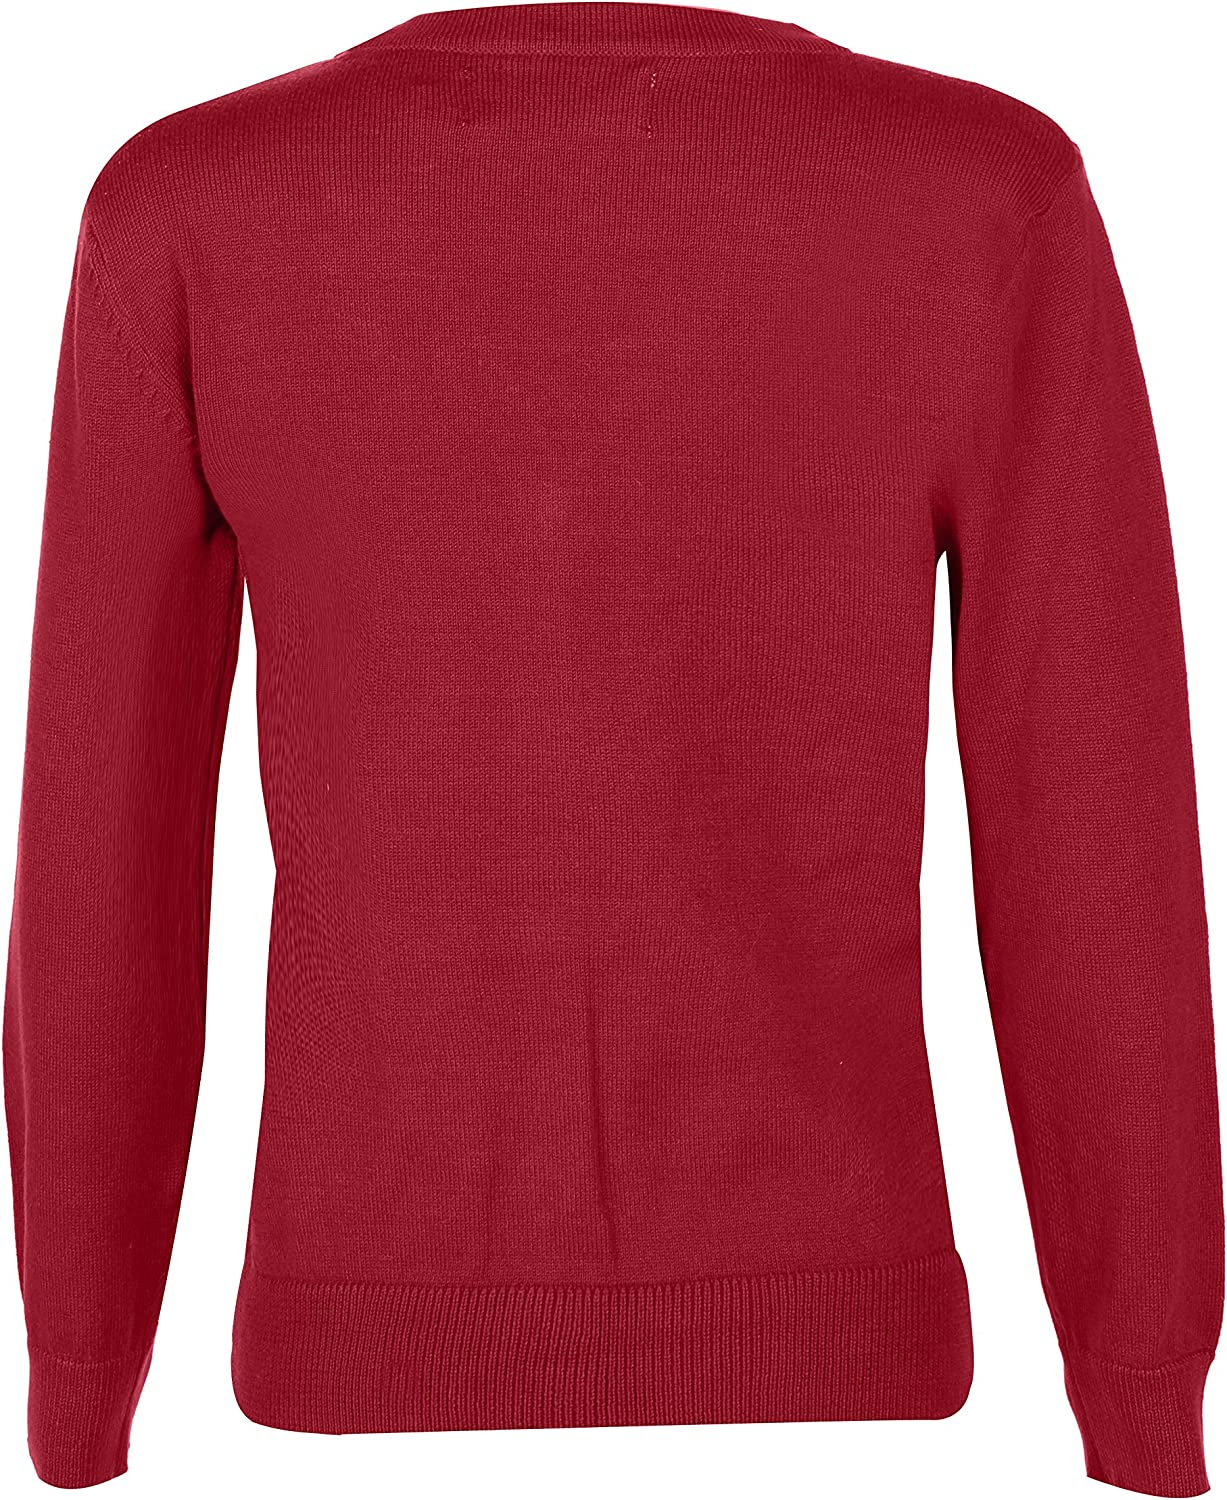 BHS Girls Cardigans with Pockets V-Neck School Uniforms Long Sleeve All Year Around Blu Cherry